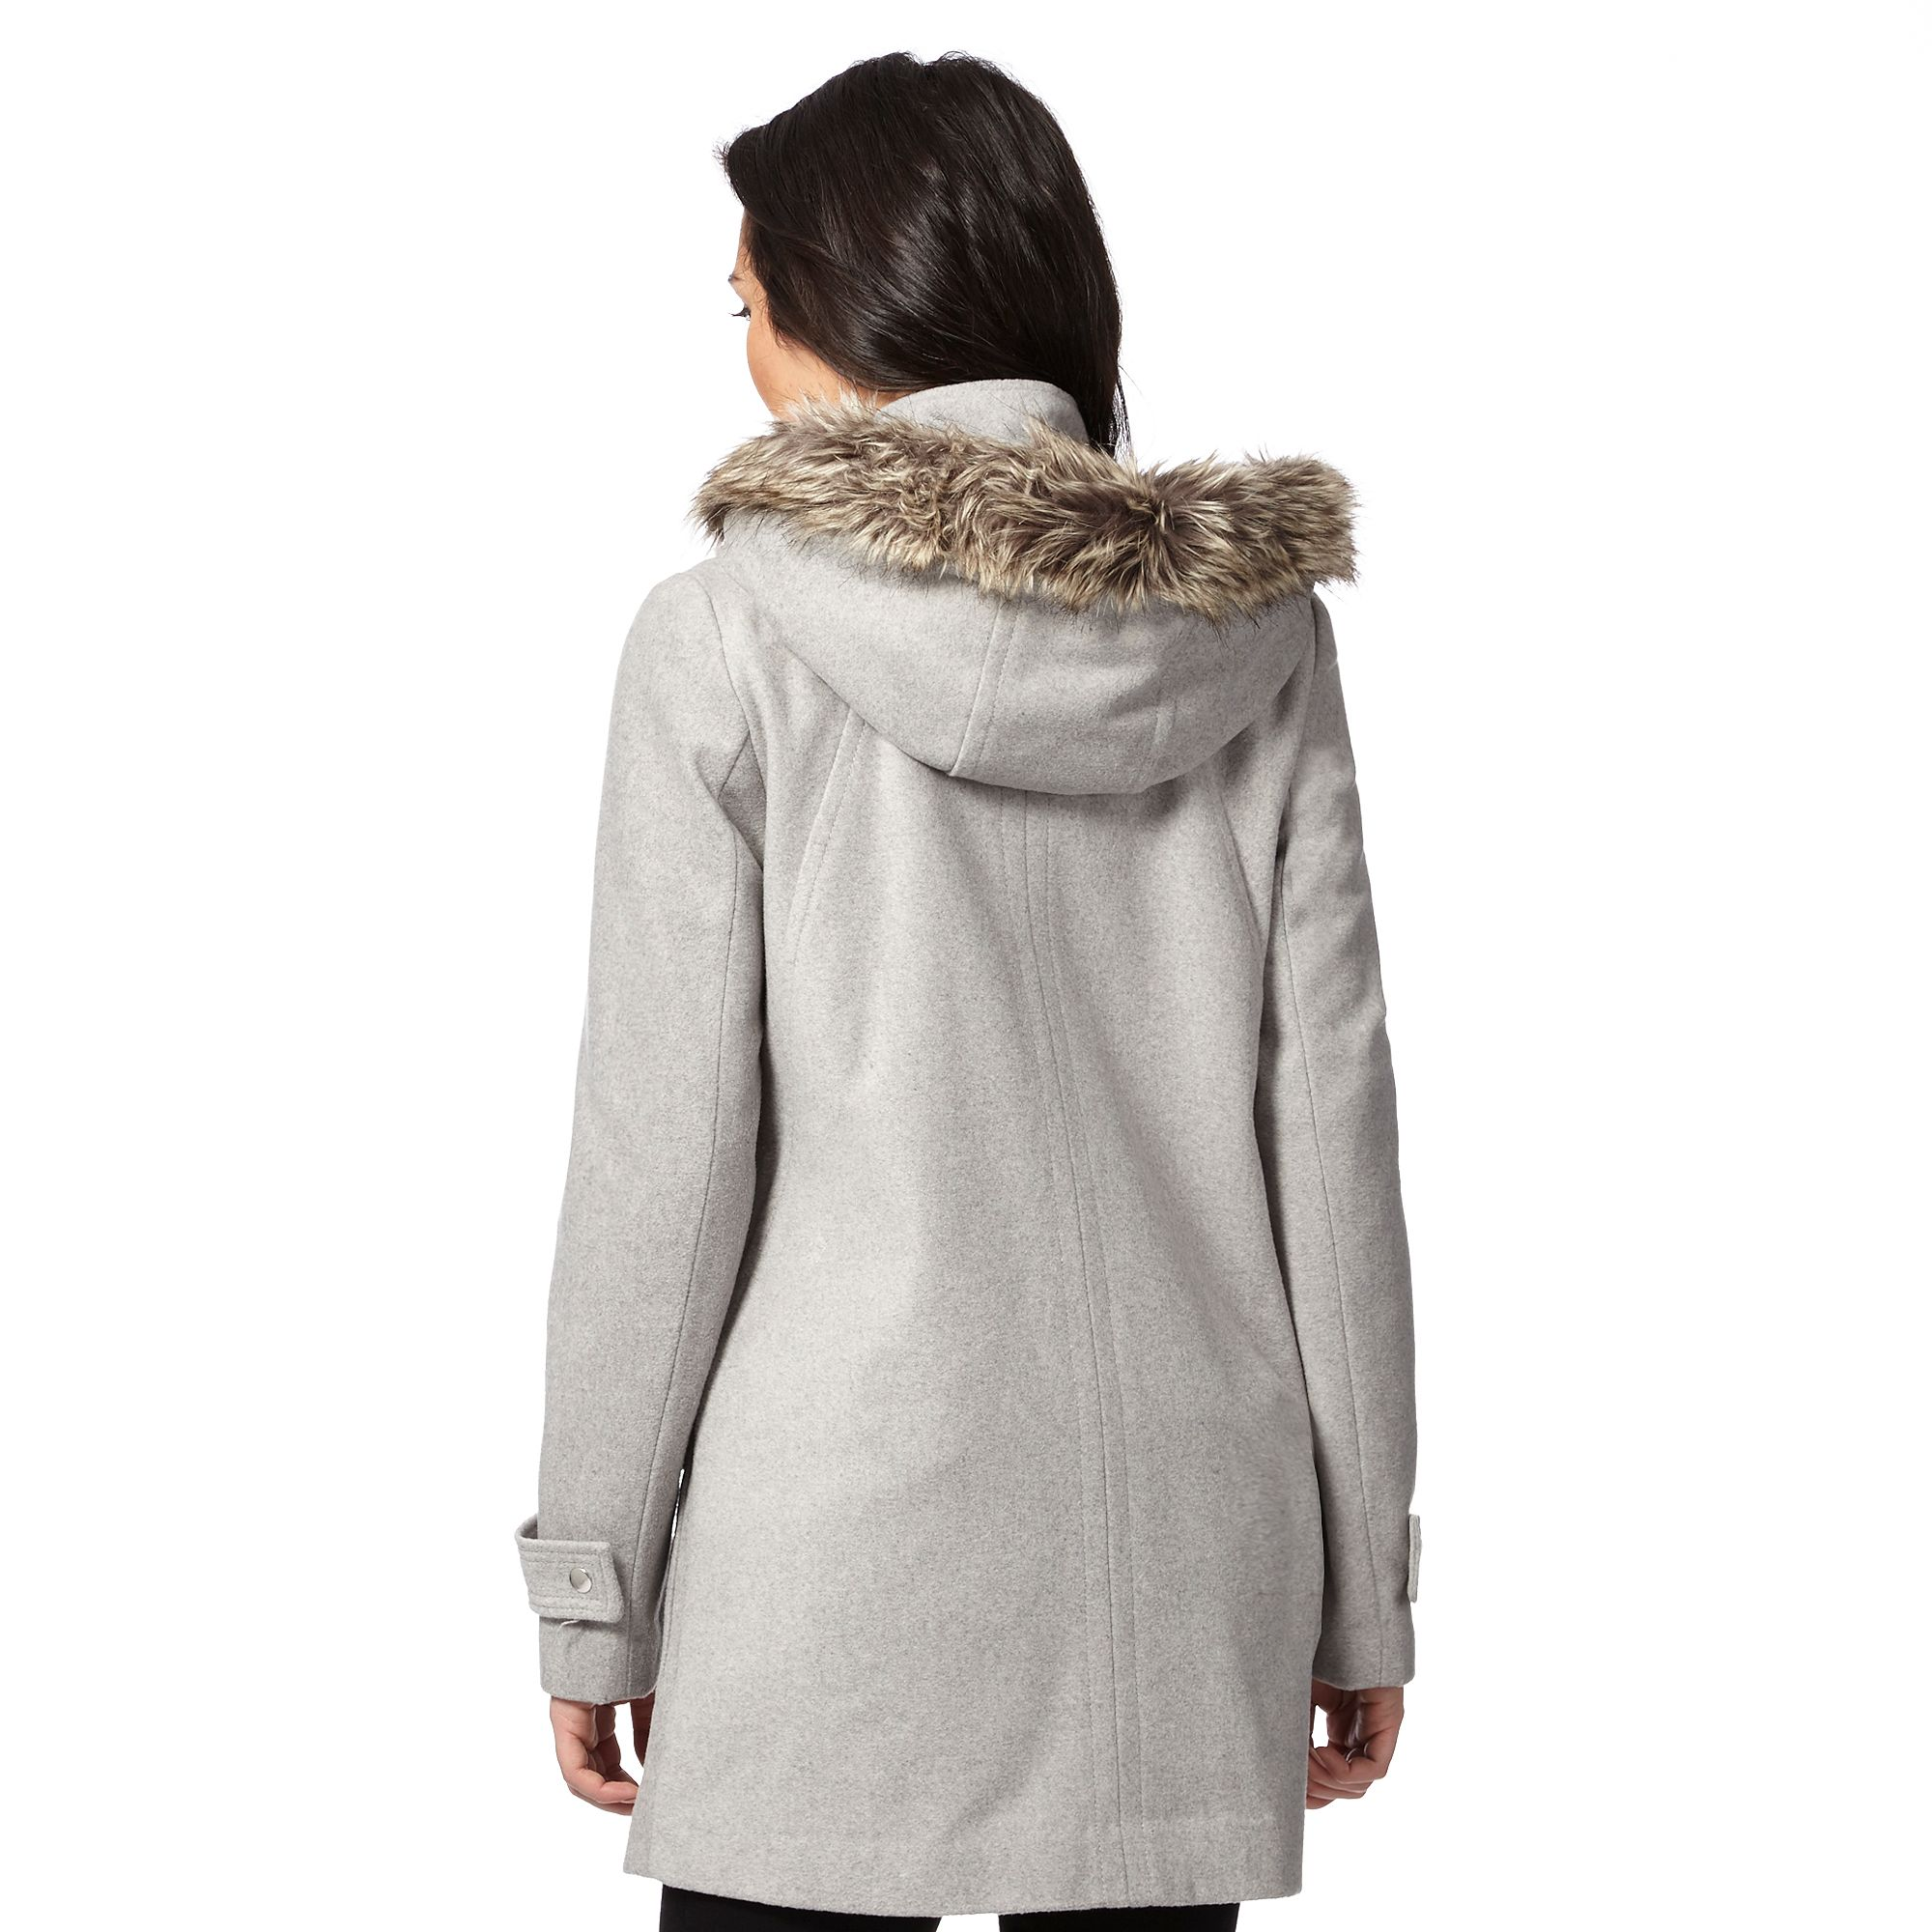 Debenhams womens coats